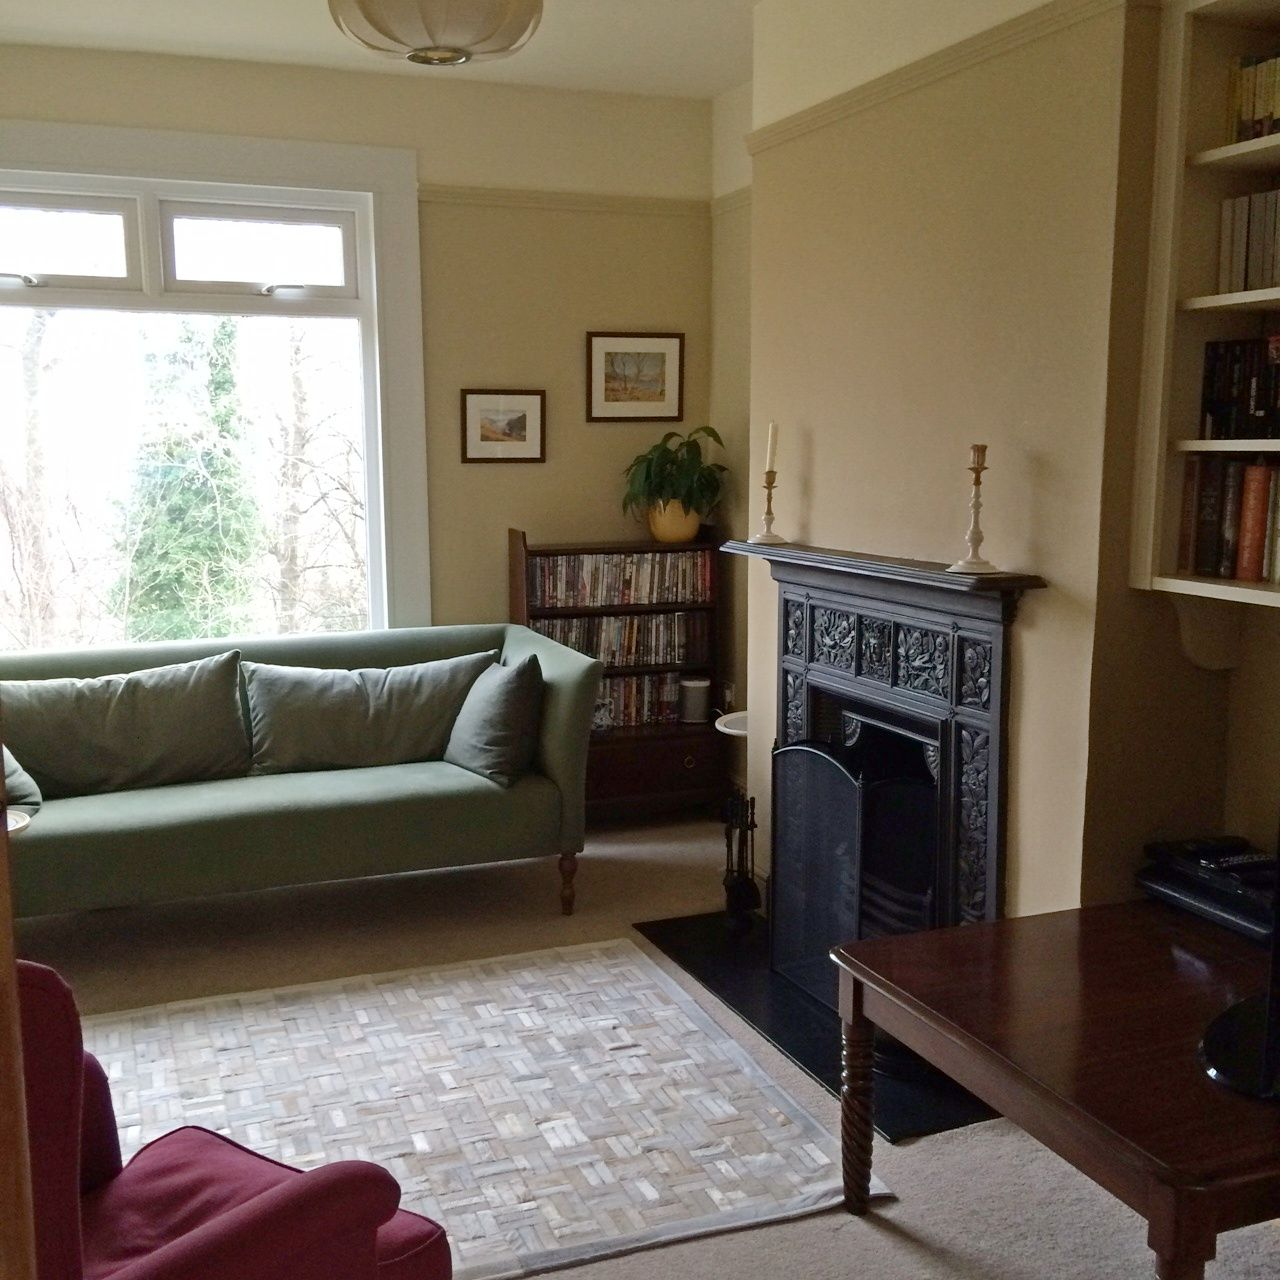 Picture Rail Painting Ideas: 1) Walls & Picture Rail: Farrow & Ball No. 16 Cord Estate